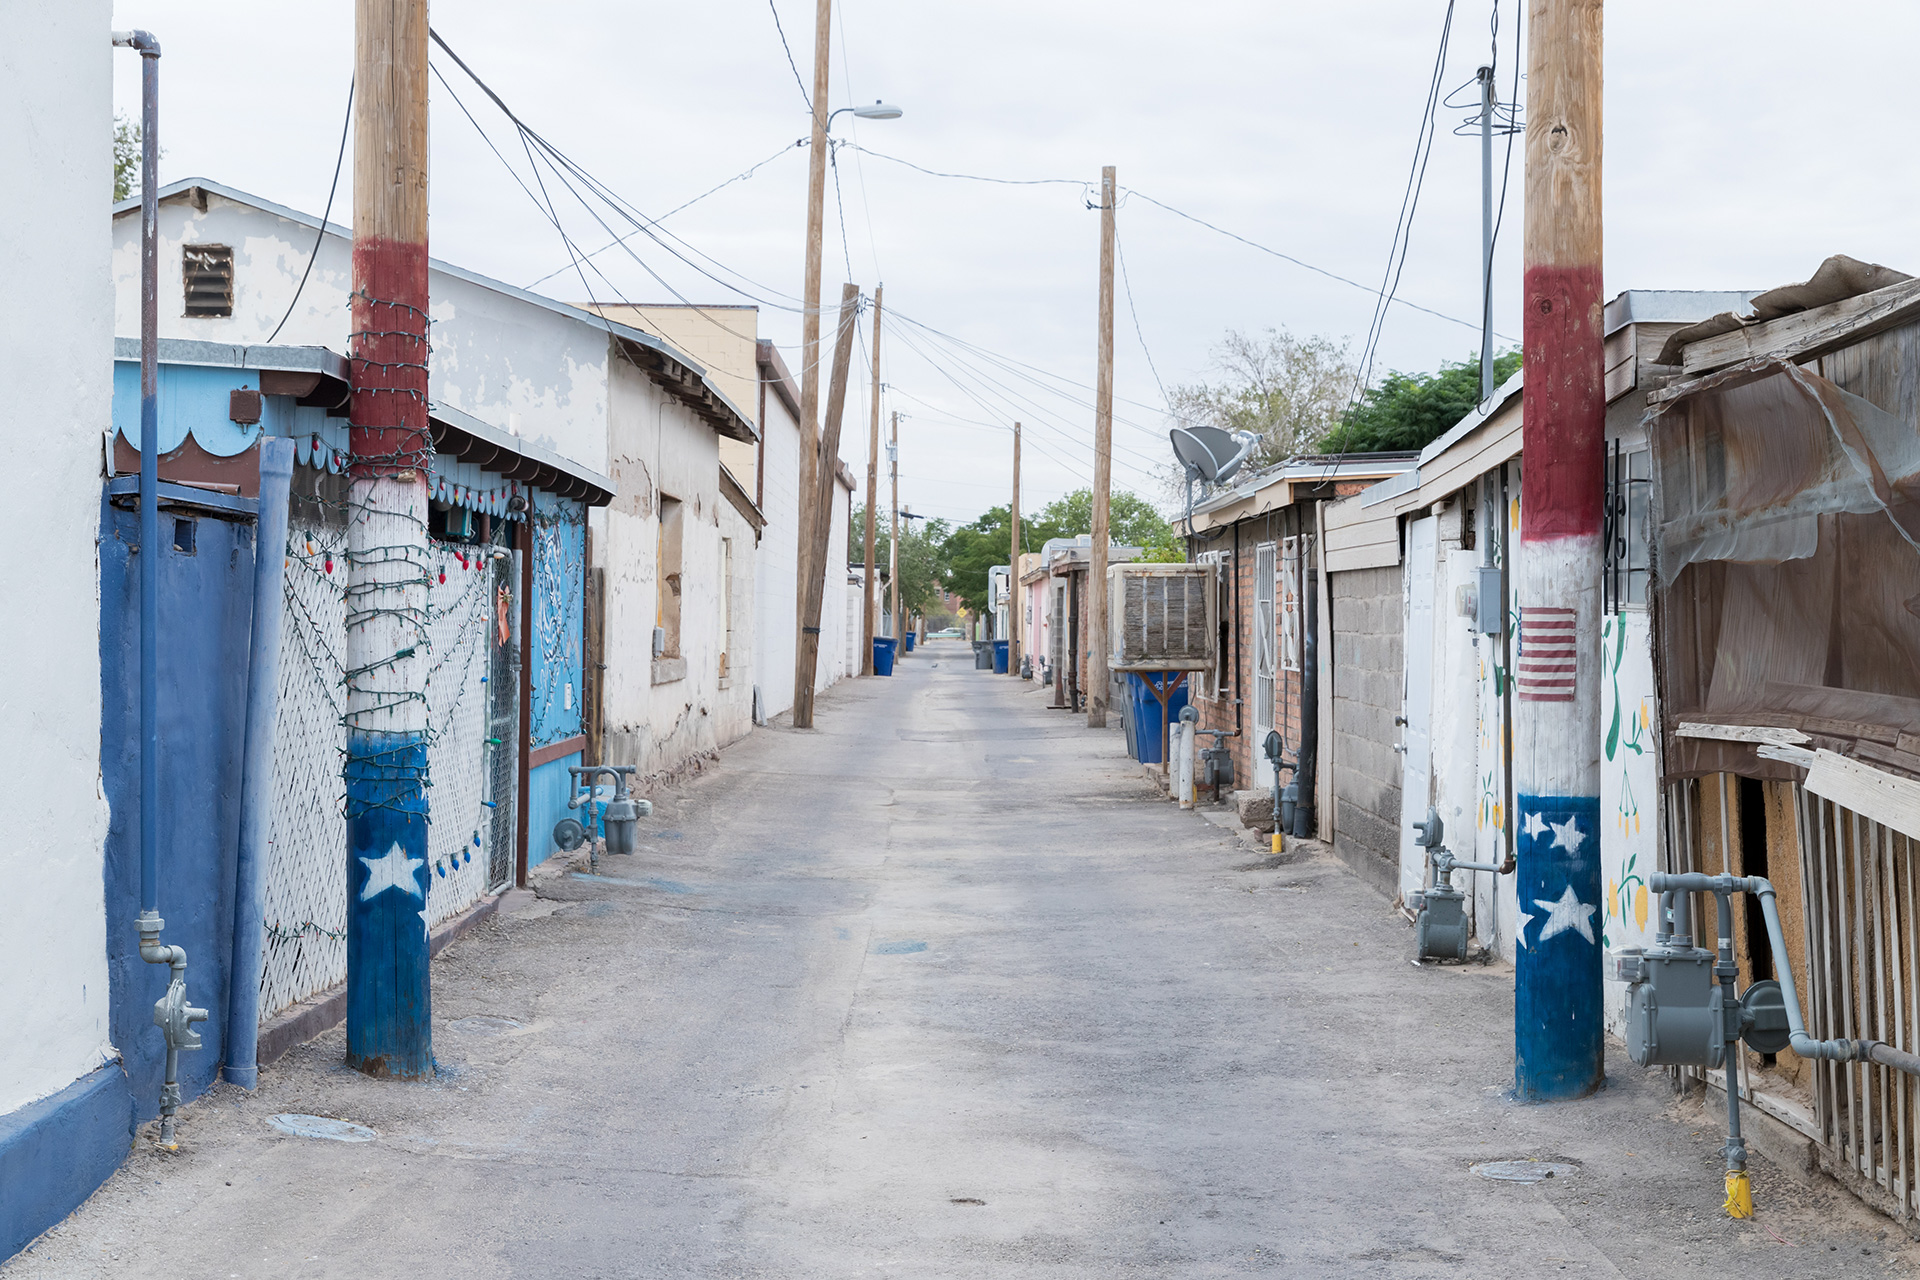 Alleyway signage in Chihuahuita eighborhood, El Paso, Texas | Two Sides of the Border | Tatiana Bilbao, Nile Greenberg | STIR